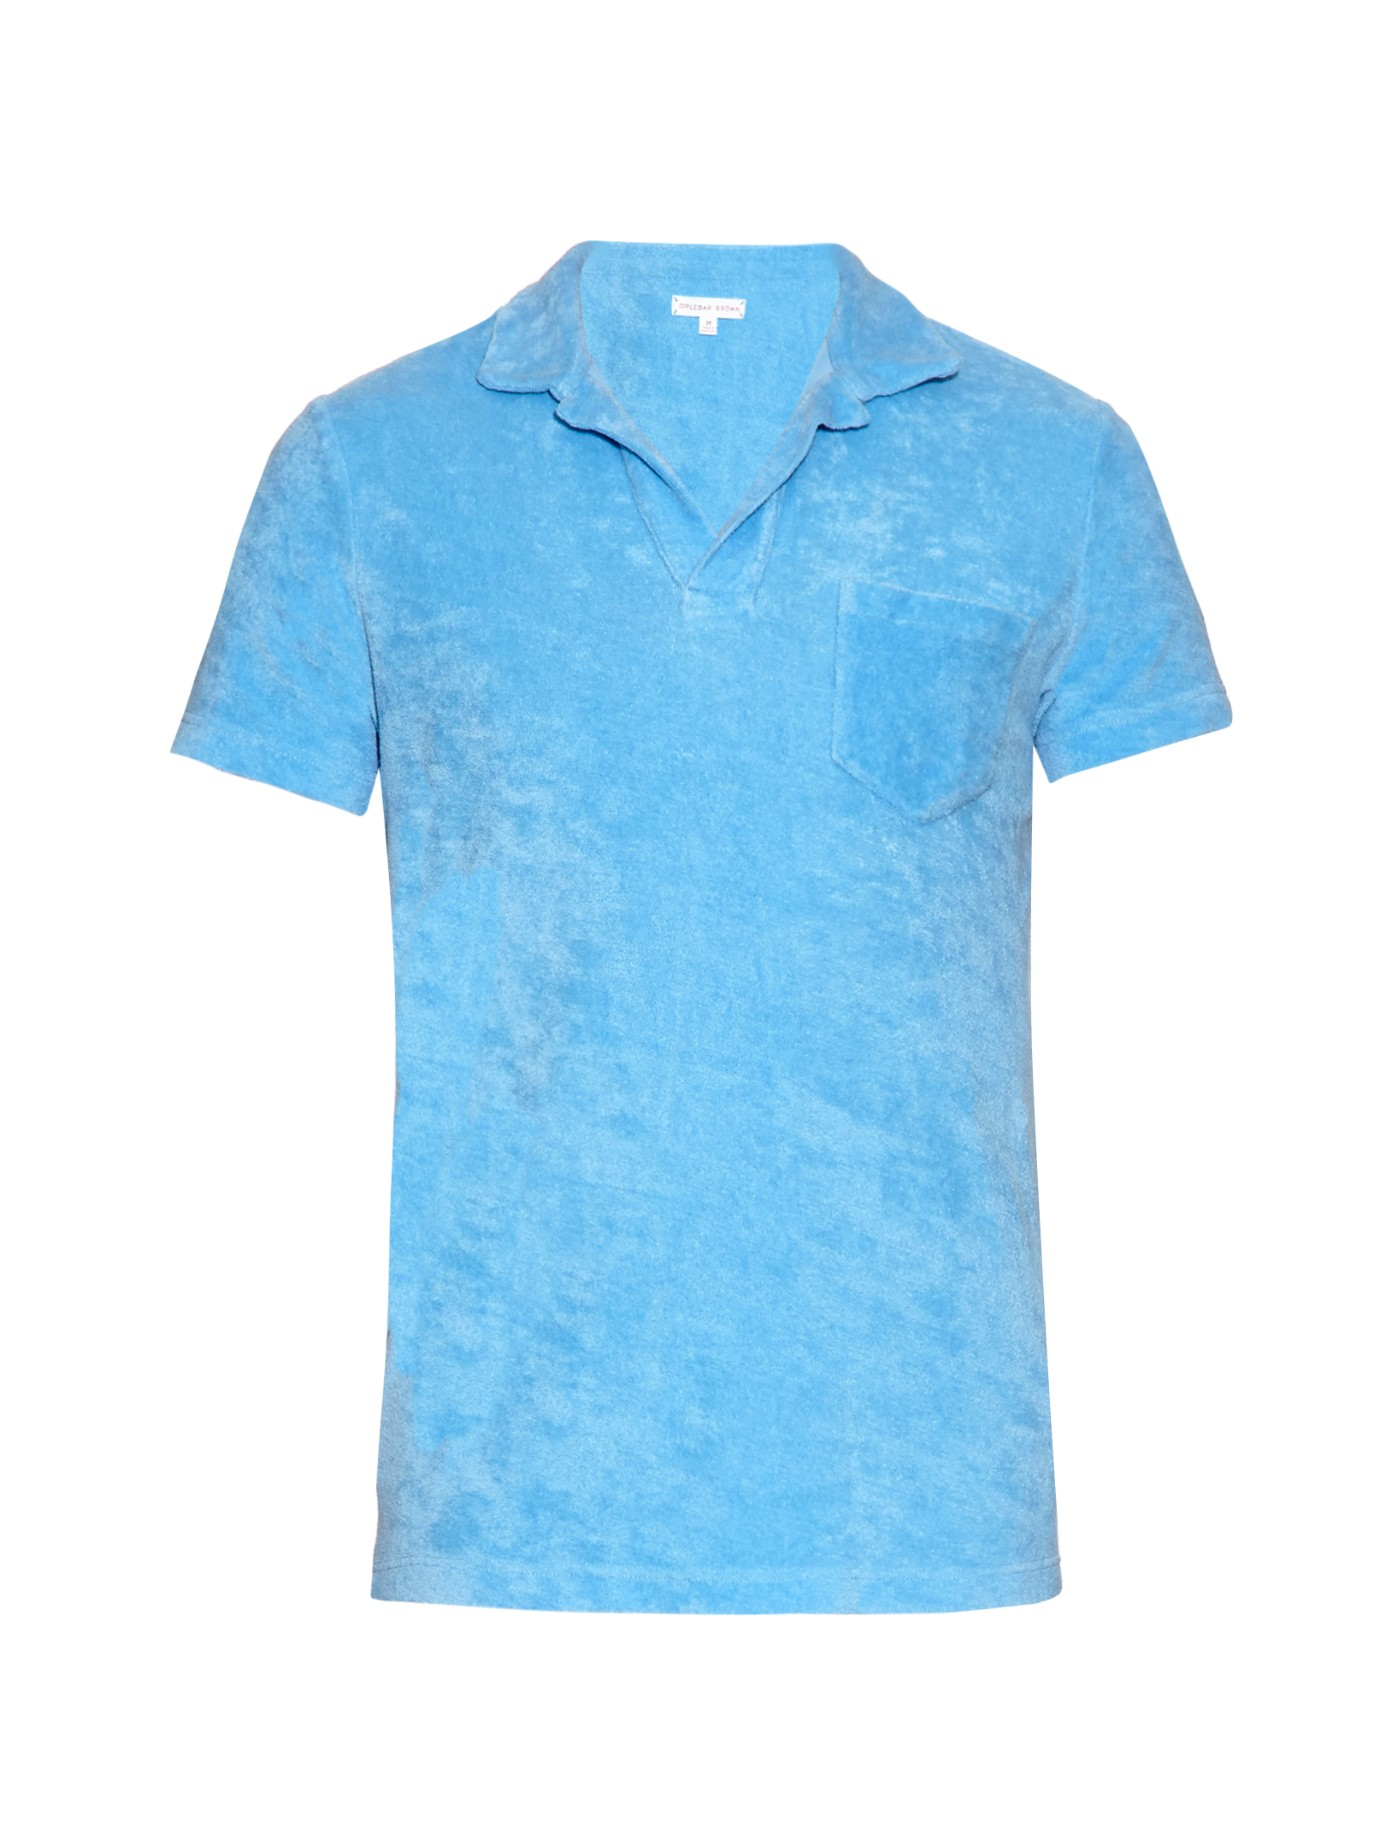 Orlebar brown terry towelling cotton polo shirt in blue for Mens terry cloth polo shirt